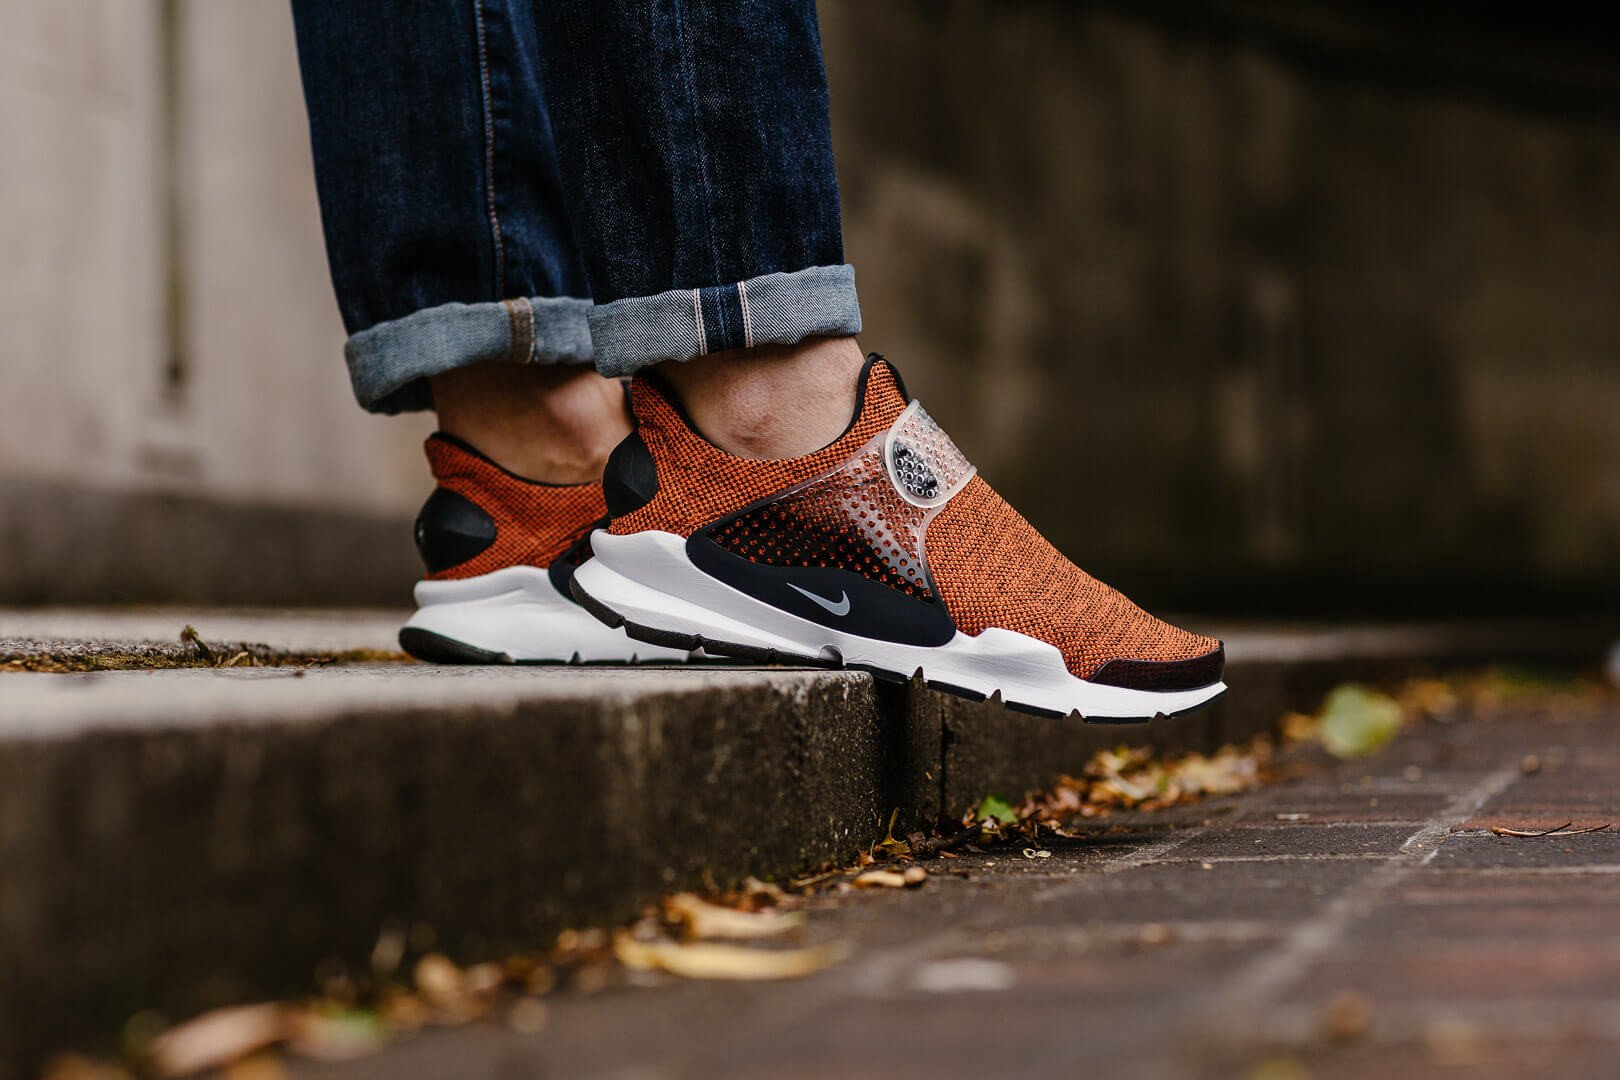 ... Terra Orange 911404-801 Nike Sock Dart SE 911404-801 e81930bf5b